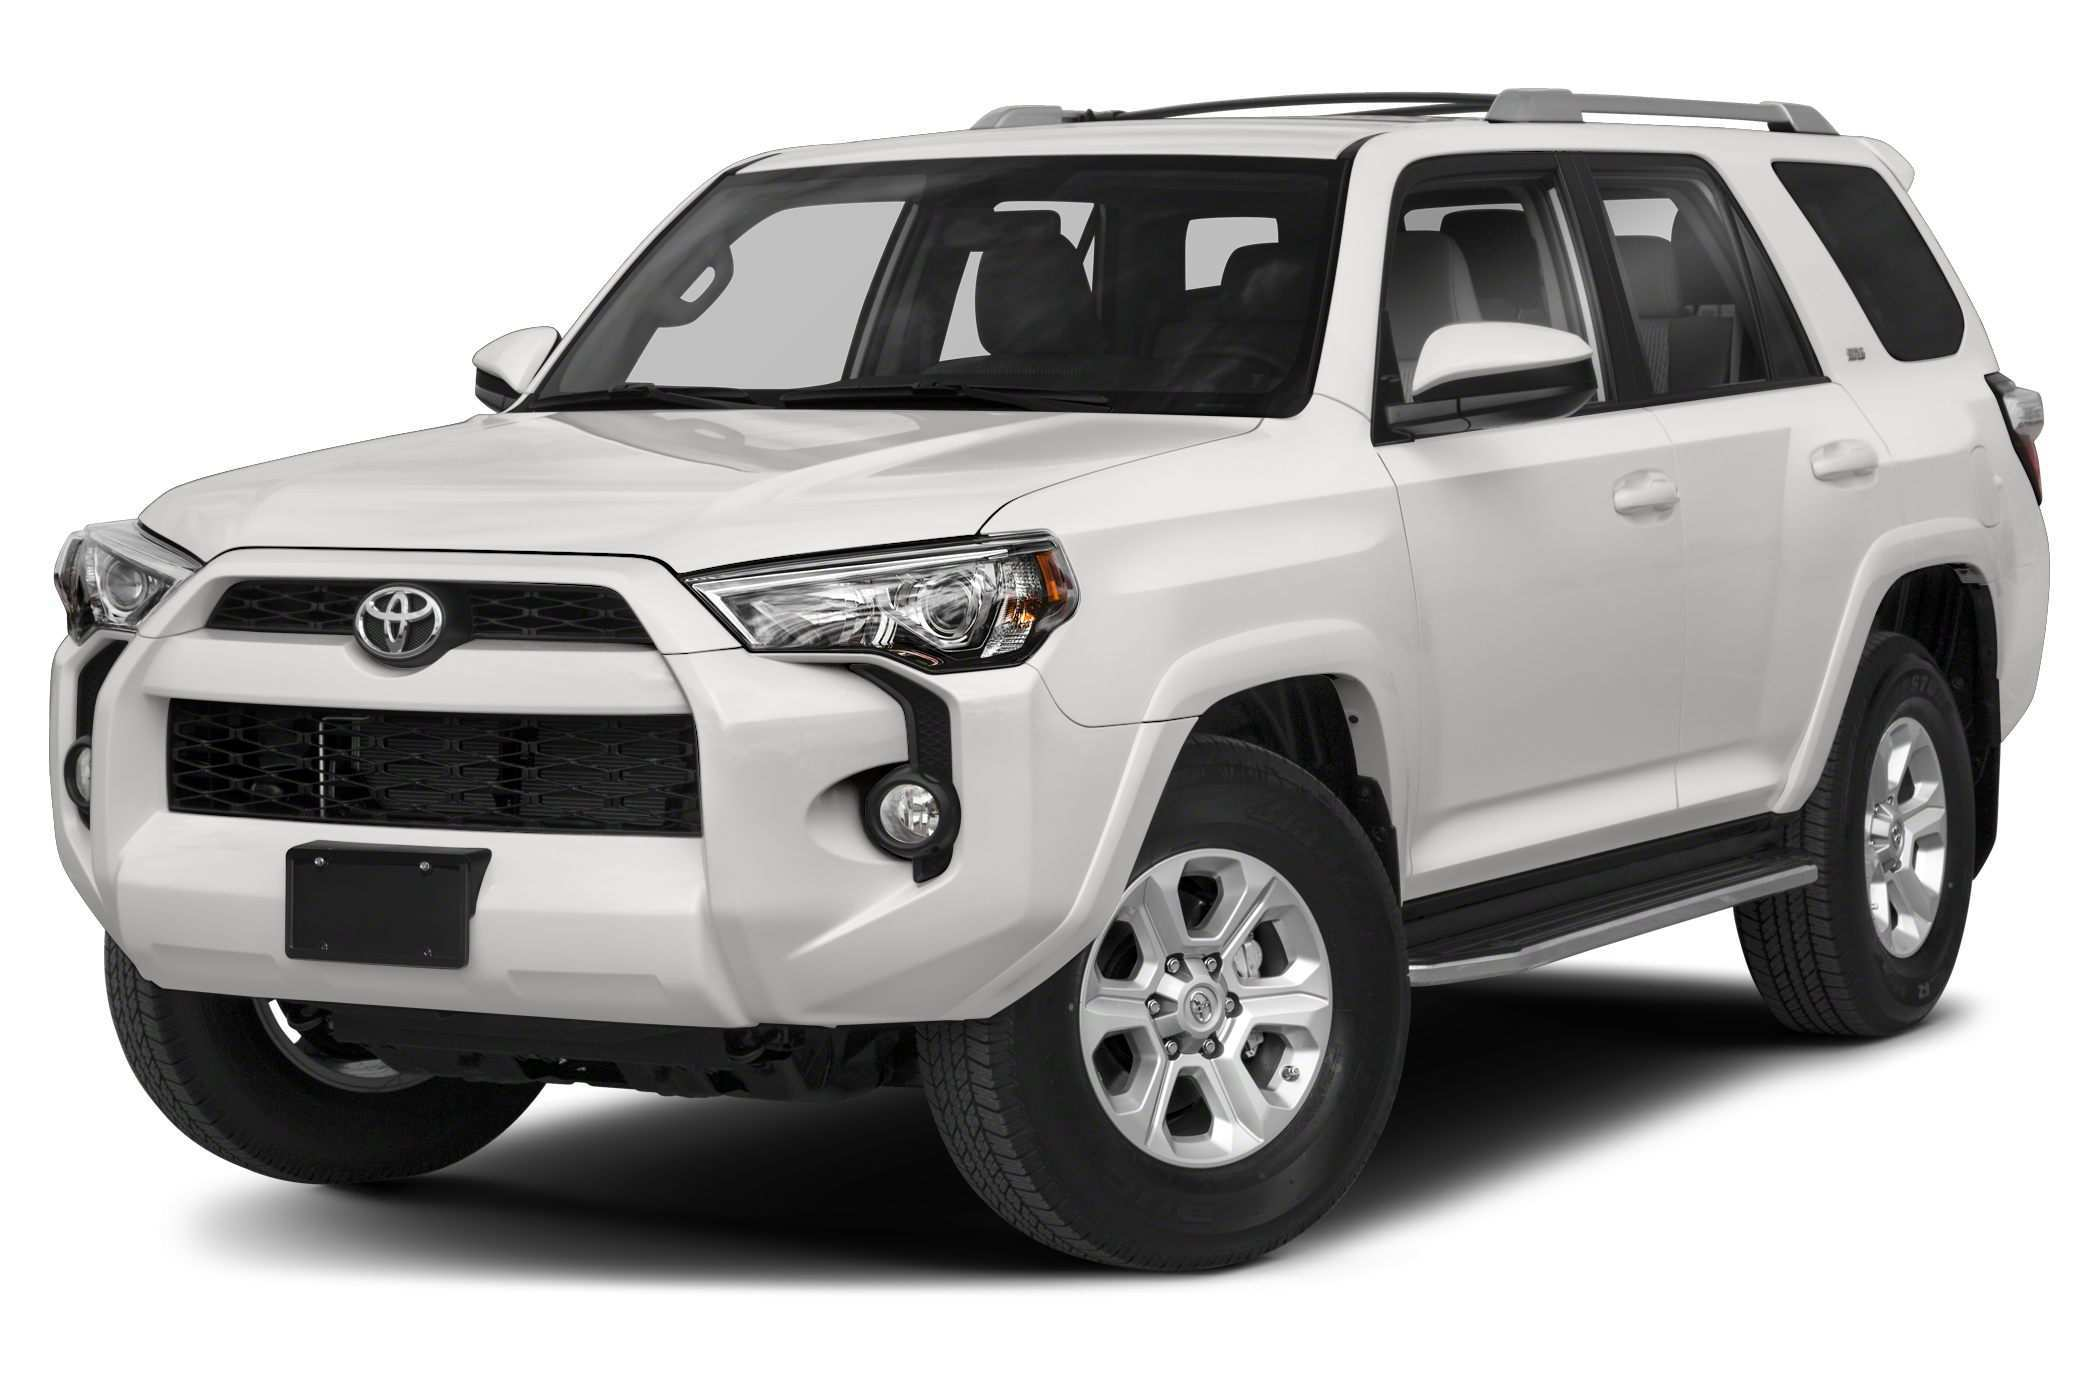 91 The Best 2019 Toyota Owners Manual Specs And Review Exterior with Best 2019 Toyota Owners Manual Specs And Review